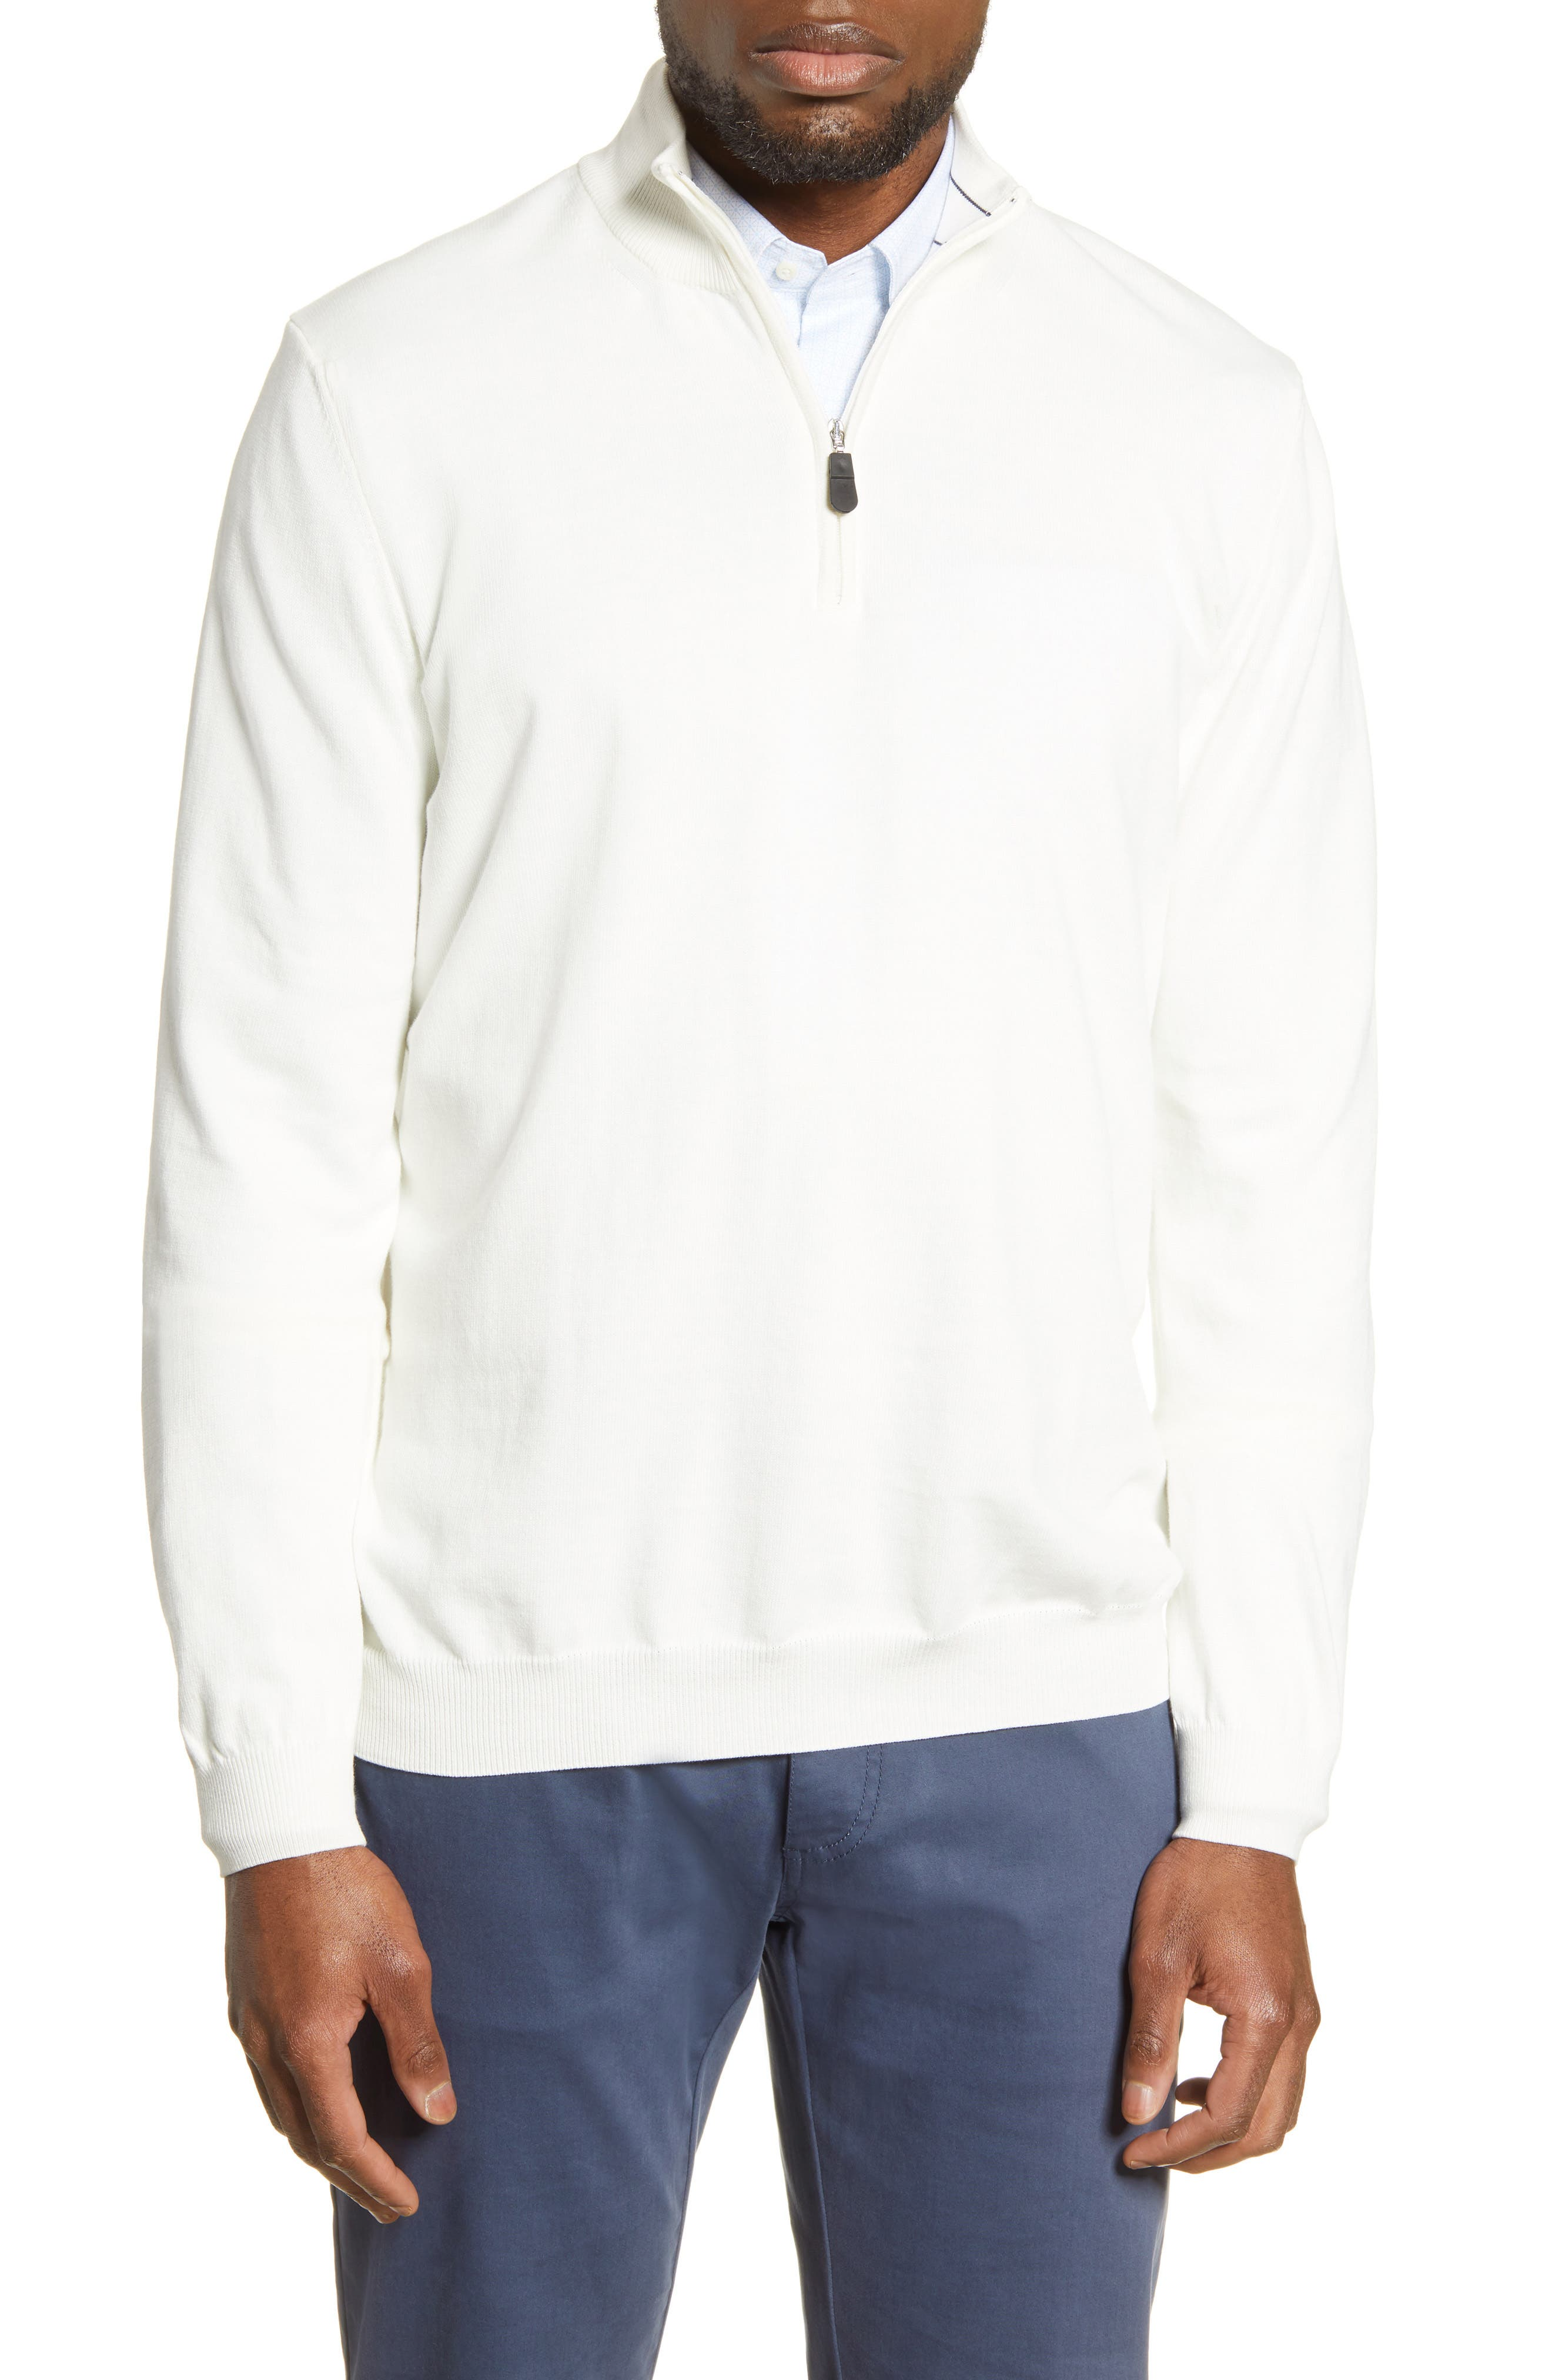 Lightweight cotton construction defines a versatile Italian pullover that is ideal for wearing with layered looks. Style Name: Bugatchi Cotton Half Zip Pullover. Style Number: 5989122 2. Available in stores.